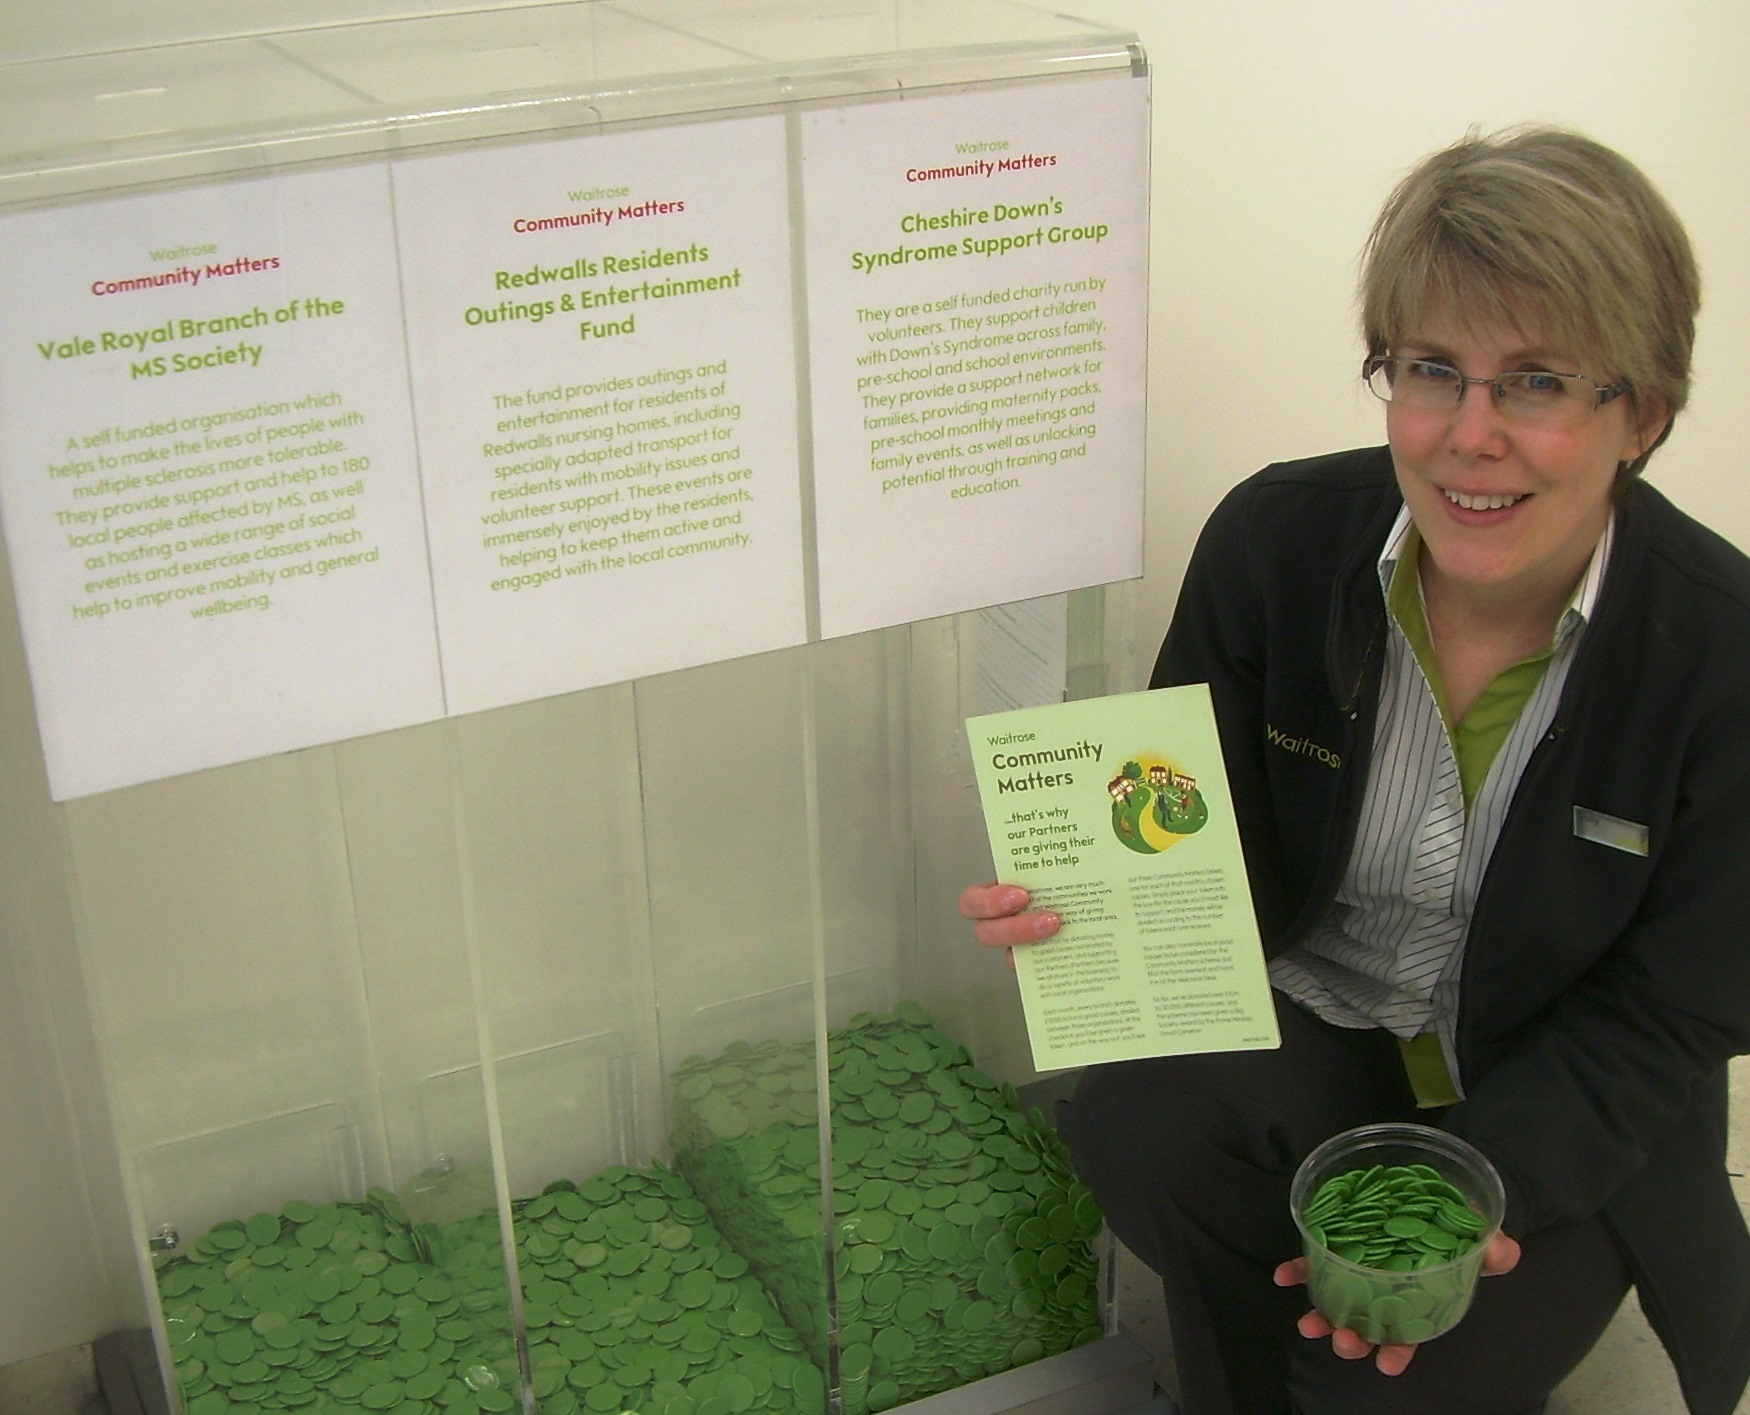 Assistant section manager Sally Mortimer next to the Community Matters donation boxes at Waitrose in Northwich.